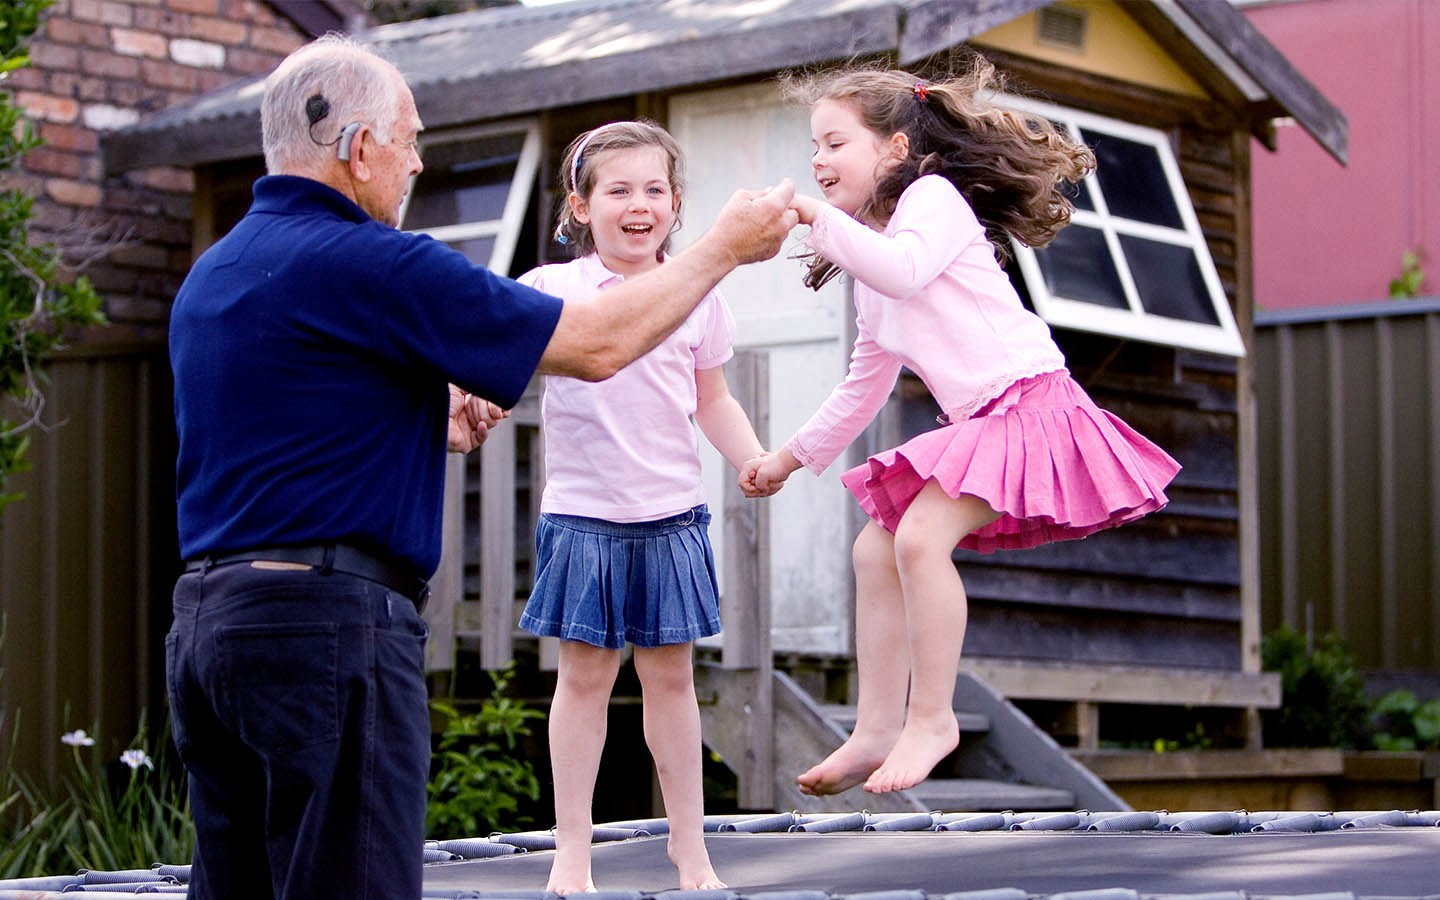 A Cochlear recipient holds his two grandaughters' hands as they jump on a trampoline